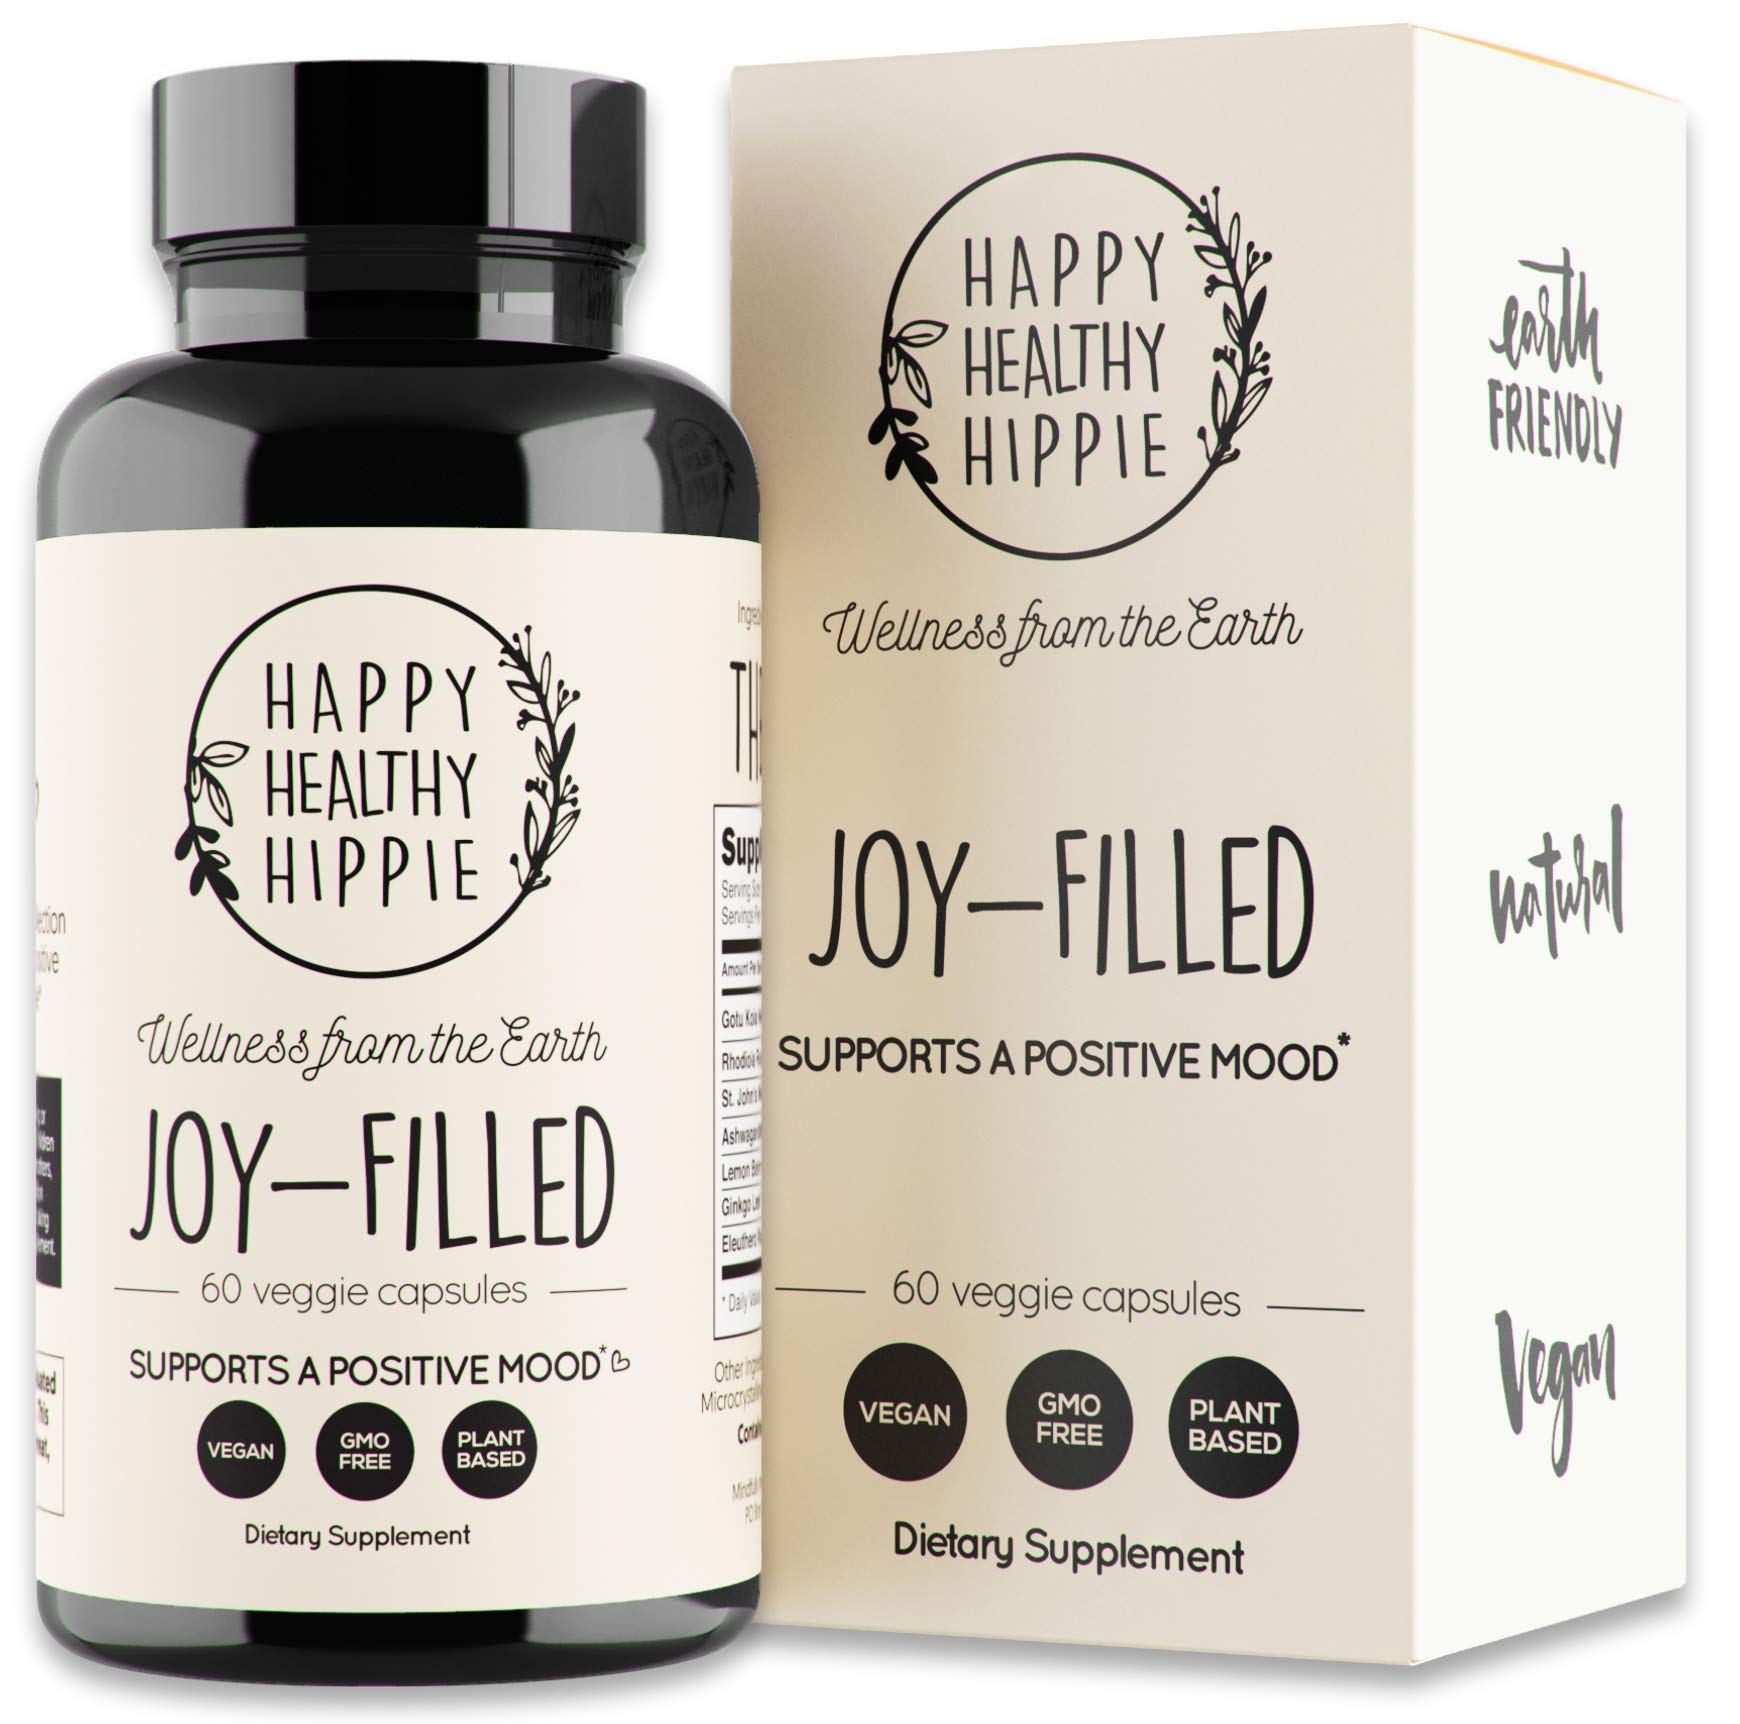 Joy-Filled | 100% Plant-Based Supplement for Anxiety & Depression Relief | Helps Relax The Mind, Boosts Mood, Relieve Stress | Contains 7 Powerful Herbs, Non-GMO, 60 Vegan Capsules by Happy Healthy Hippie